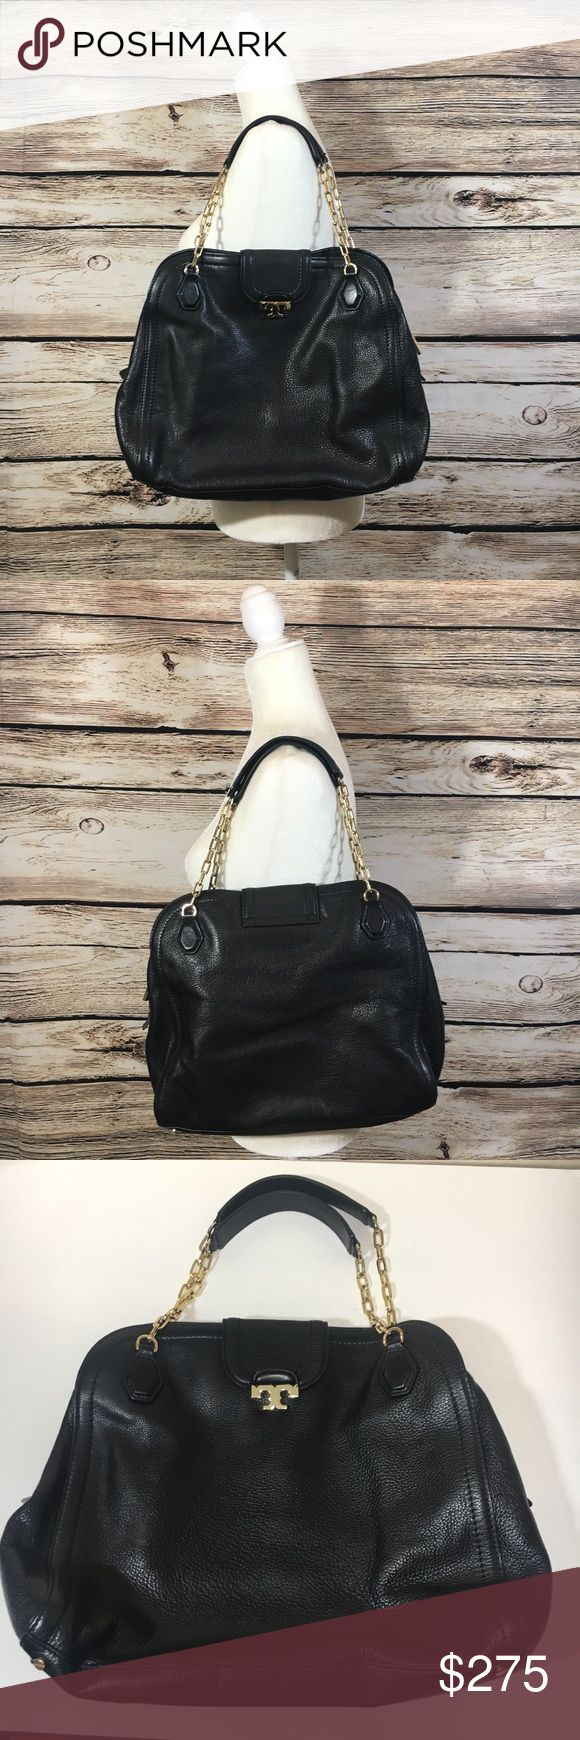 """Tory Burch Sammy leather black pebbled satchel bag Tory Burch """"Sammy"""" black pebbled leather satchel with gold chain strap. Magnetic snap/zip closure, gold hardware, clean interior with no staining. Exterior is in excellent condition! This bag was lightly worn, like new condition! No dust bag included, 100% authentic! L 13.5"""", Height 12"""", width 3.5"""", Strap drop 9"""" Tory Burch Bags Satchels"""